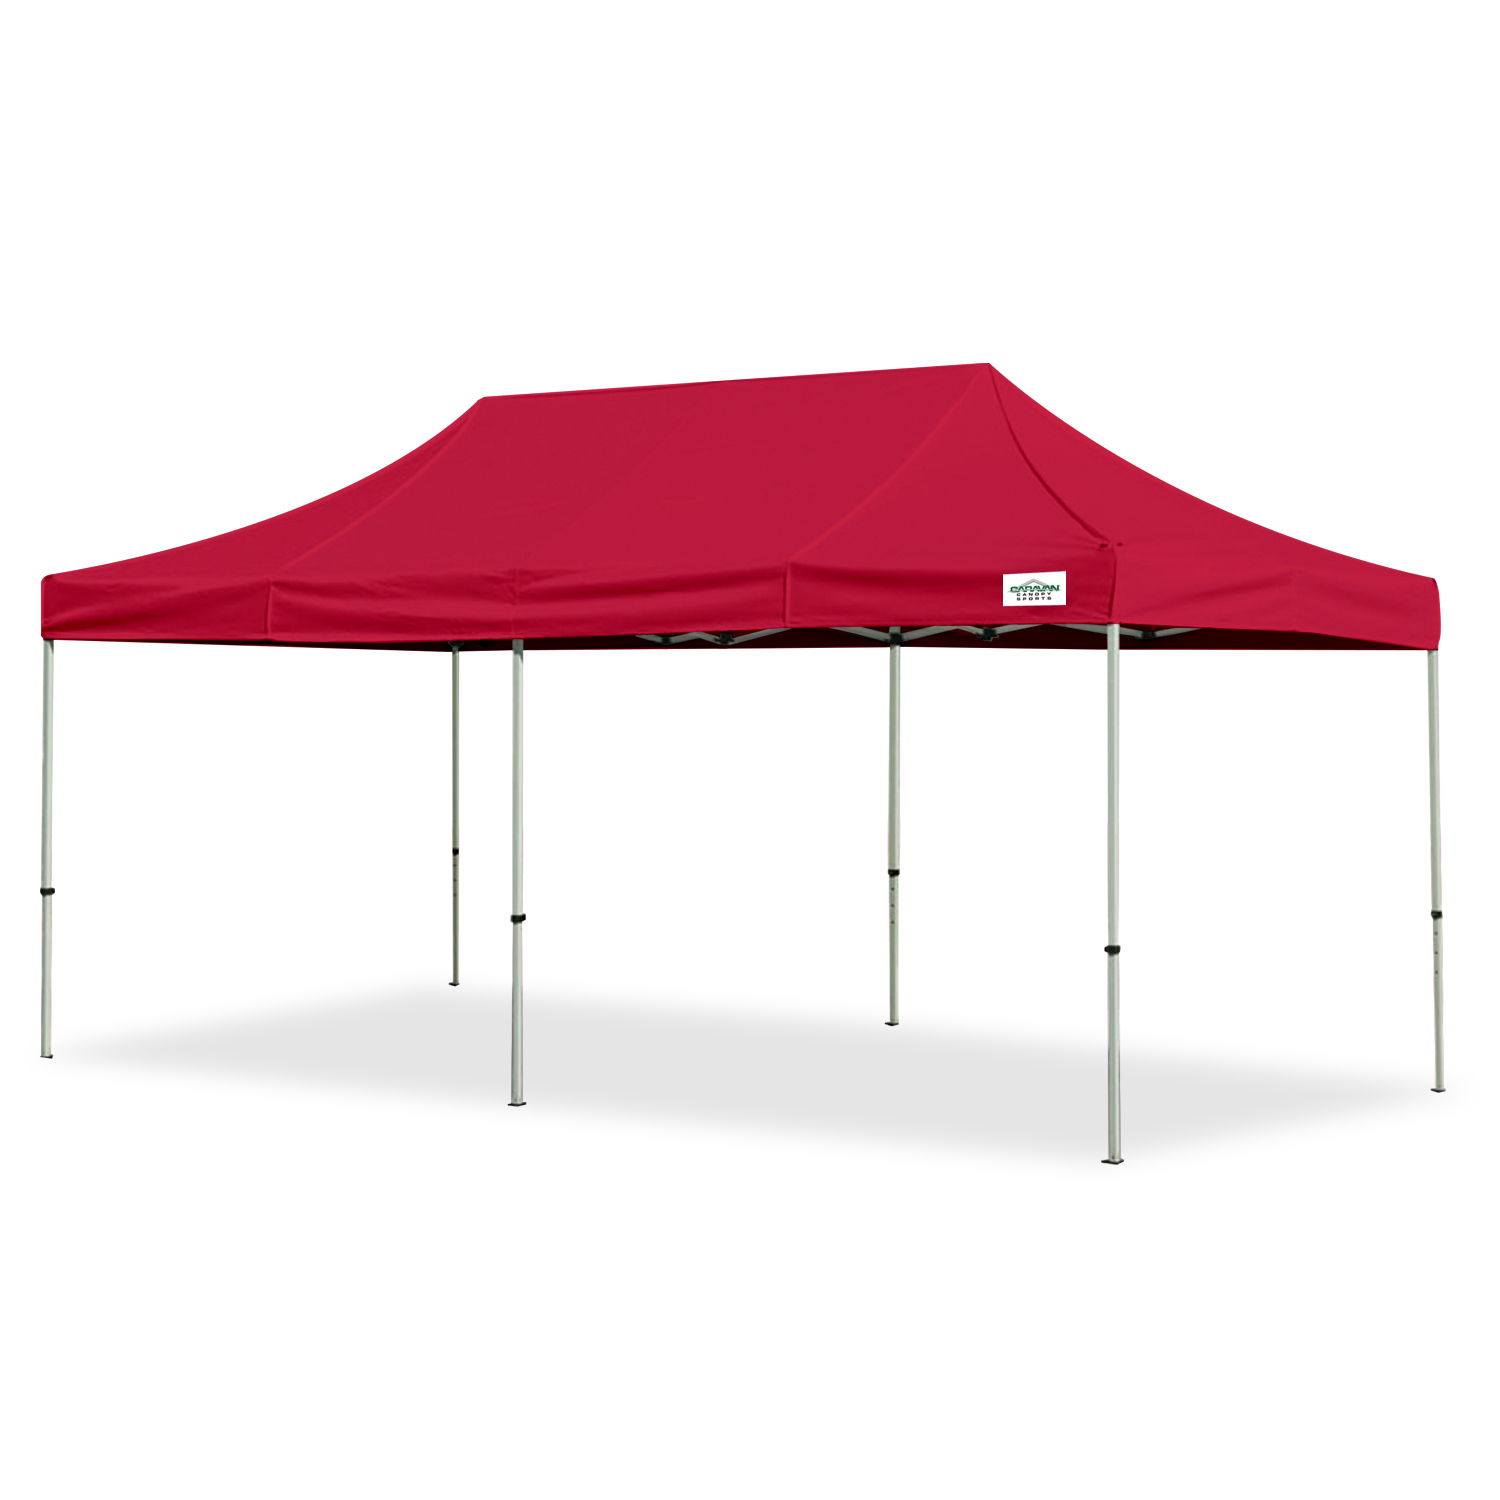 Fabric Replacement Top 10x20 Aluma Classic Caravan Canopy